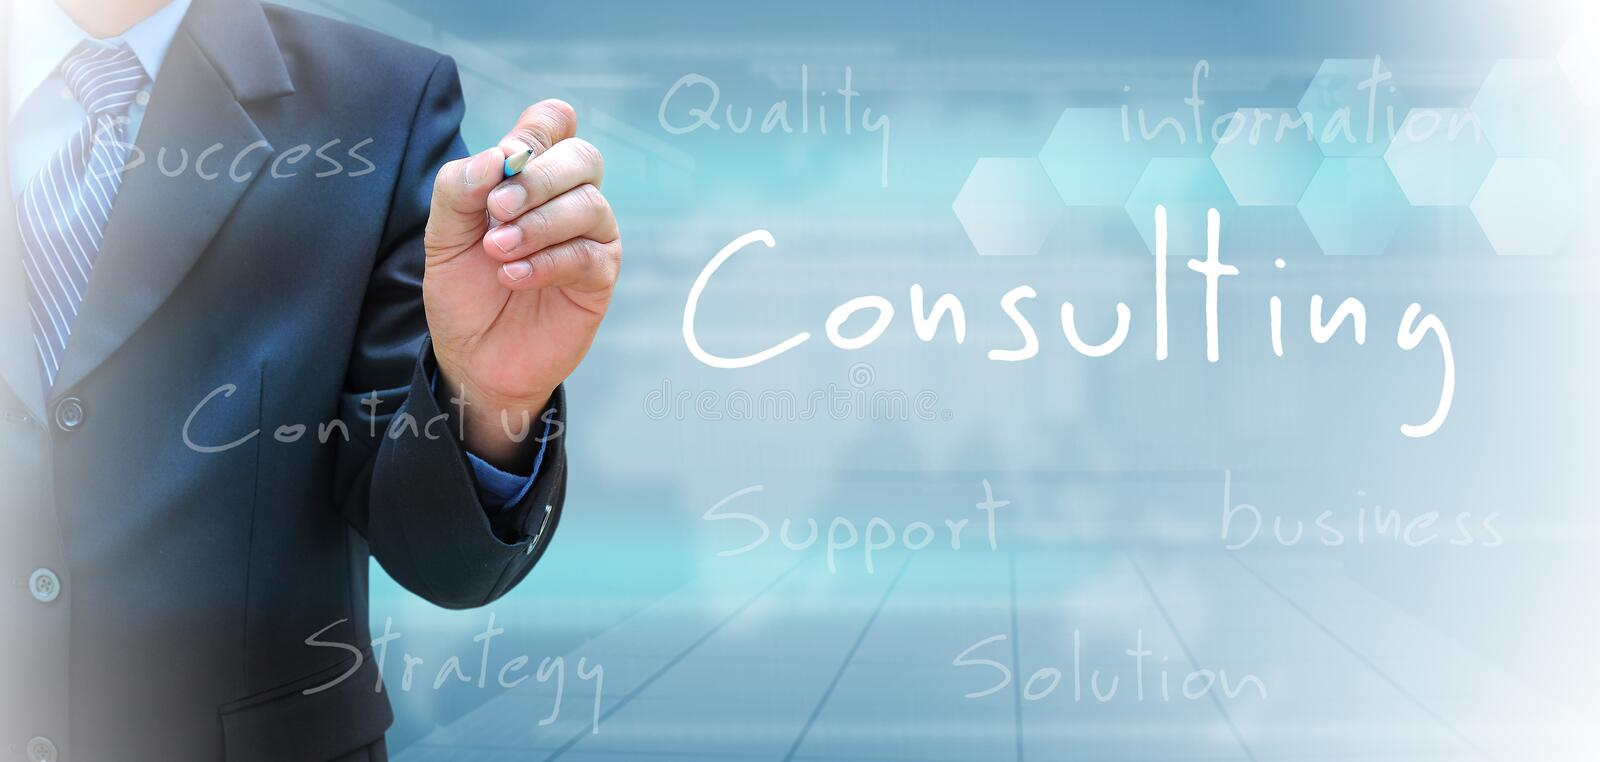 Consulting vector illustration